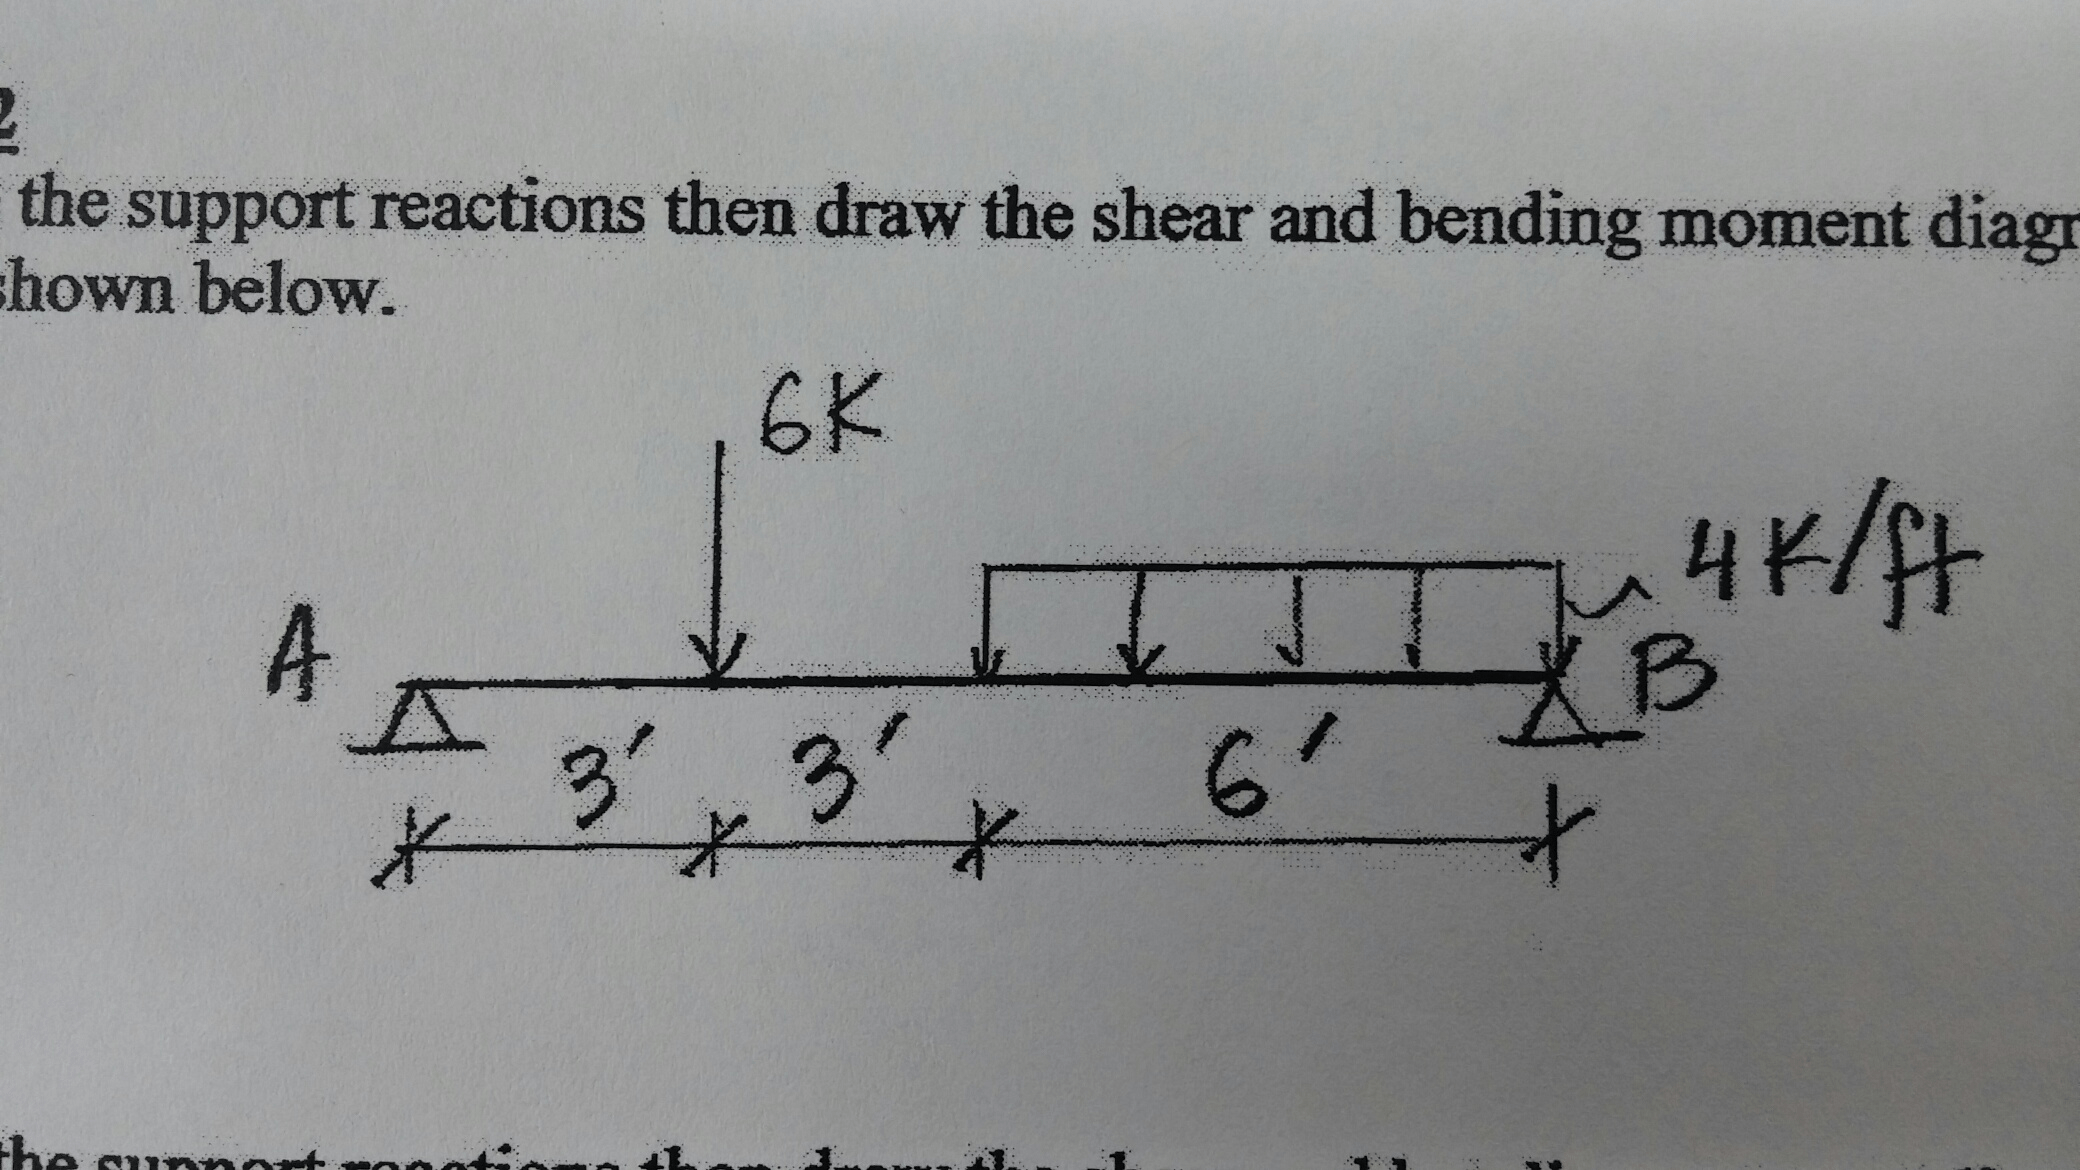 how to draw bending moment diagram human ear and functions determine the support reactions then drawthe shear